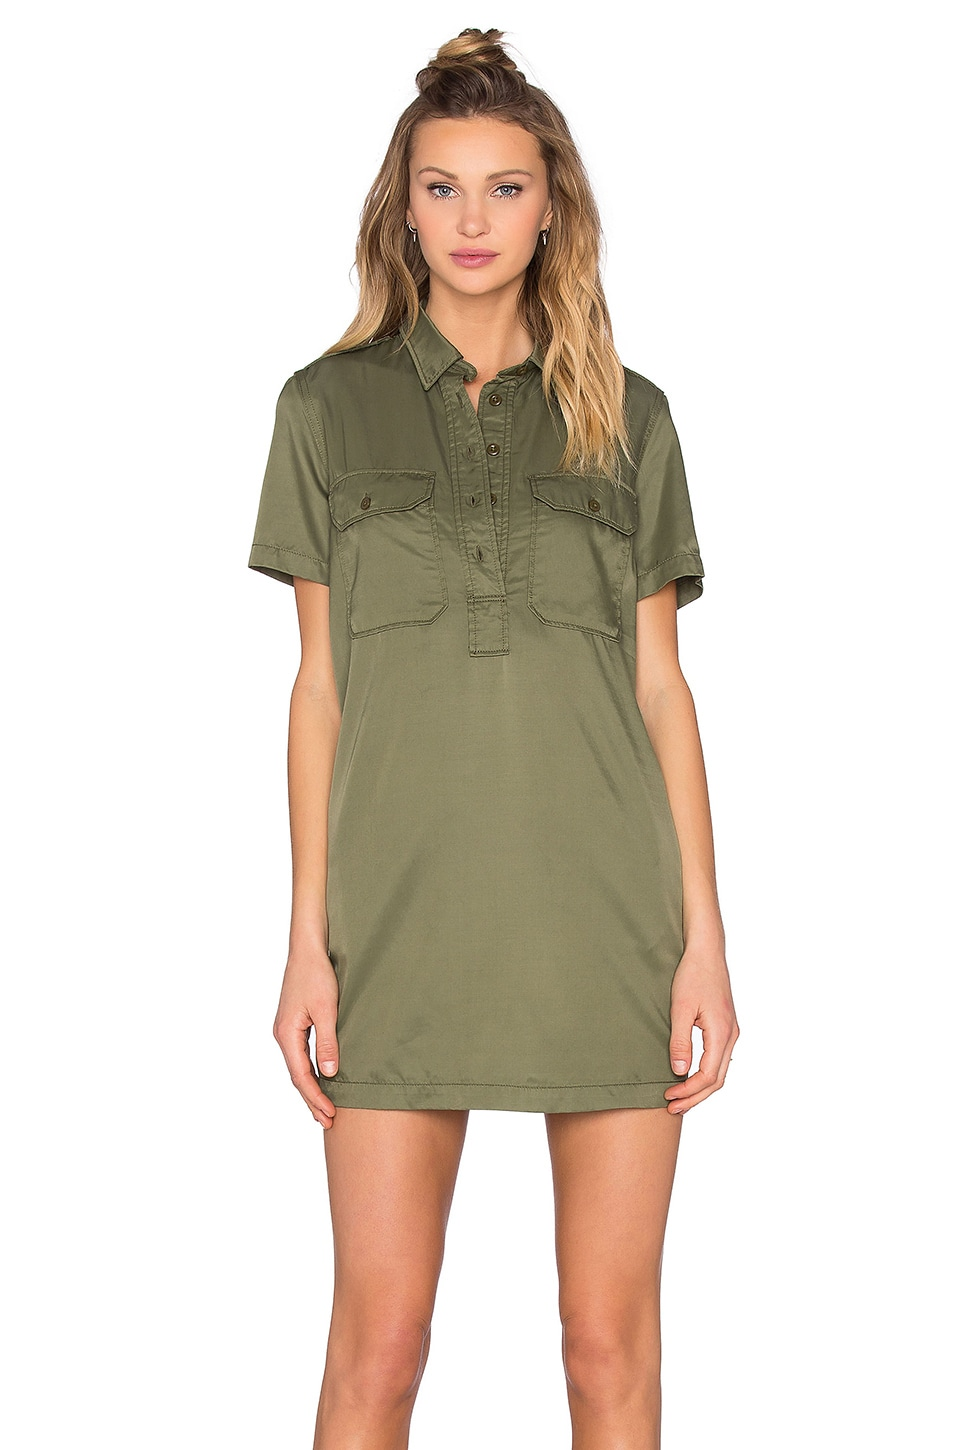 NLST Cupro Officer's Shirt Dress in Olive